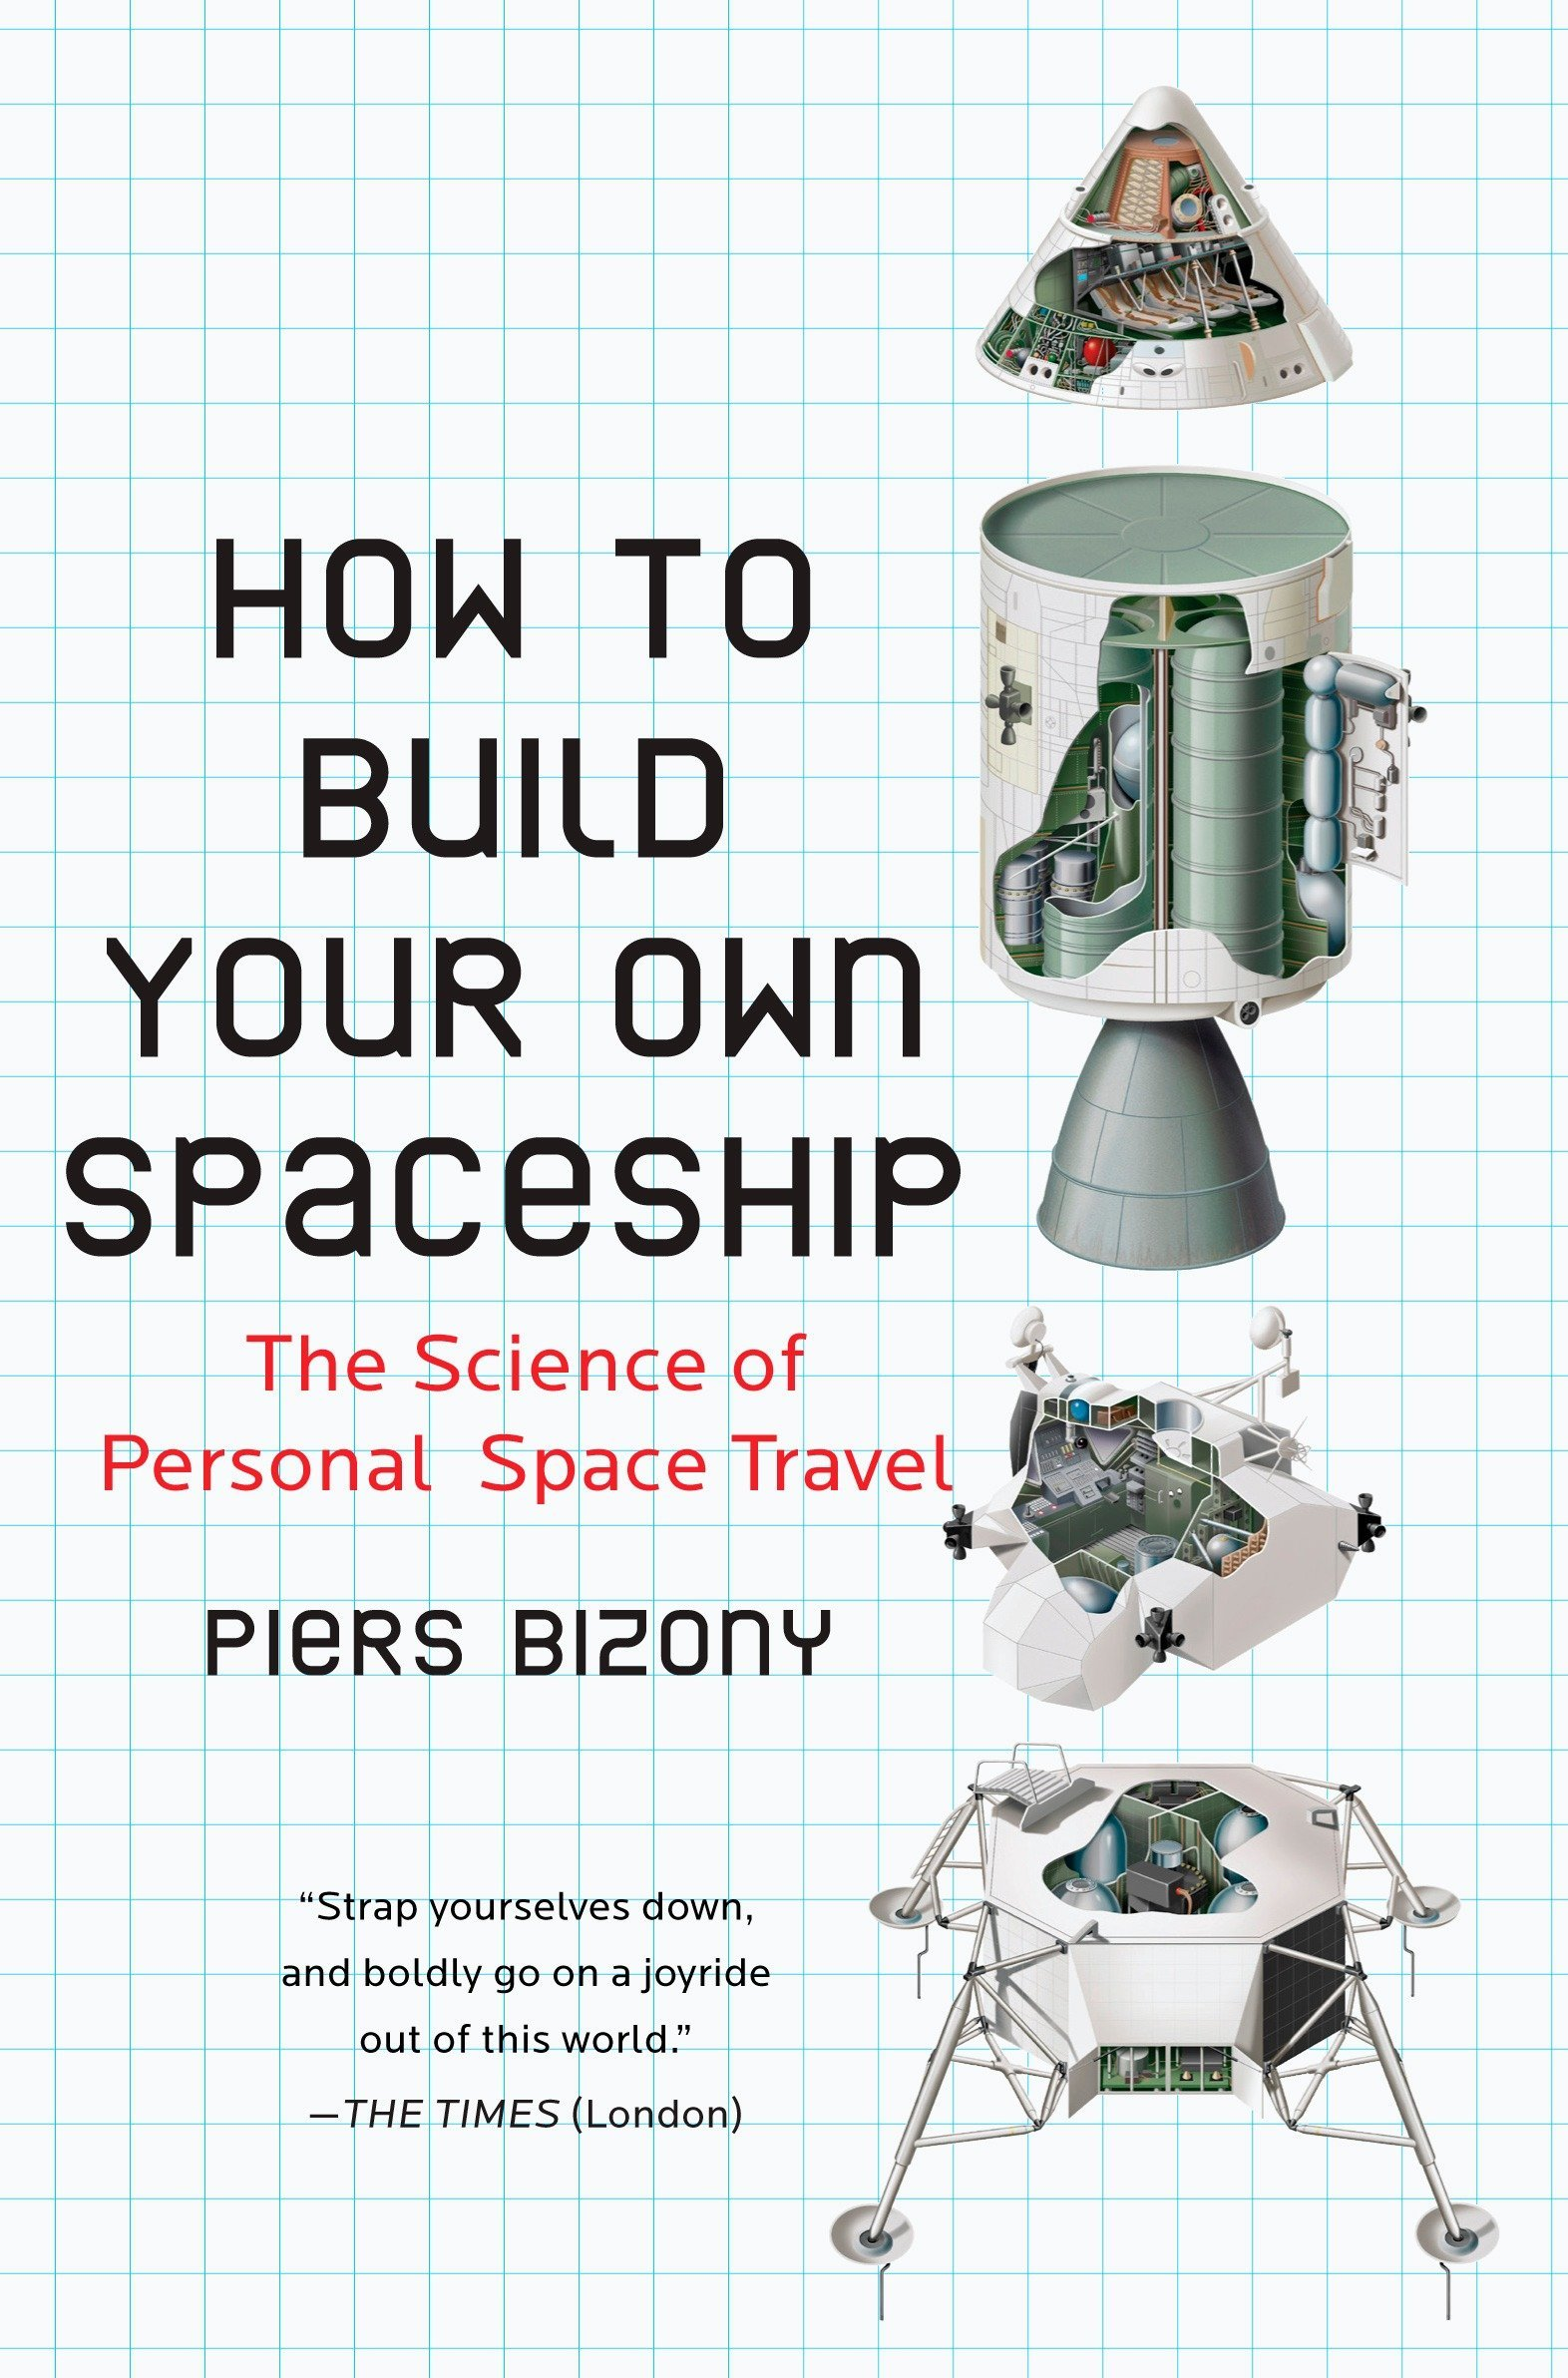 How to build your own spaceship